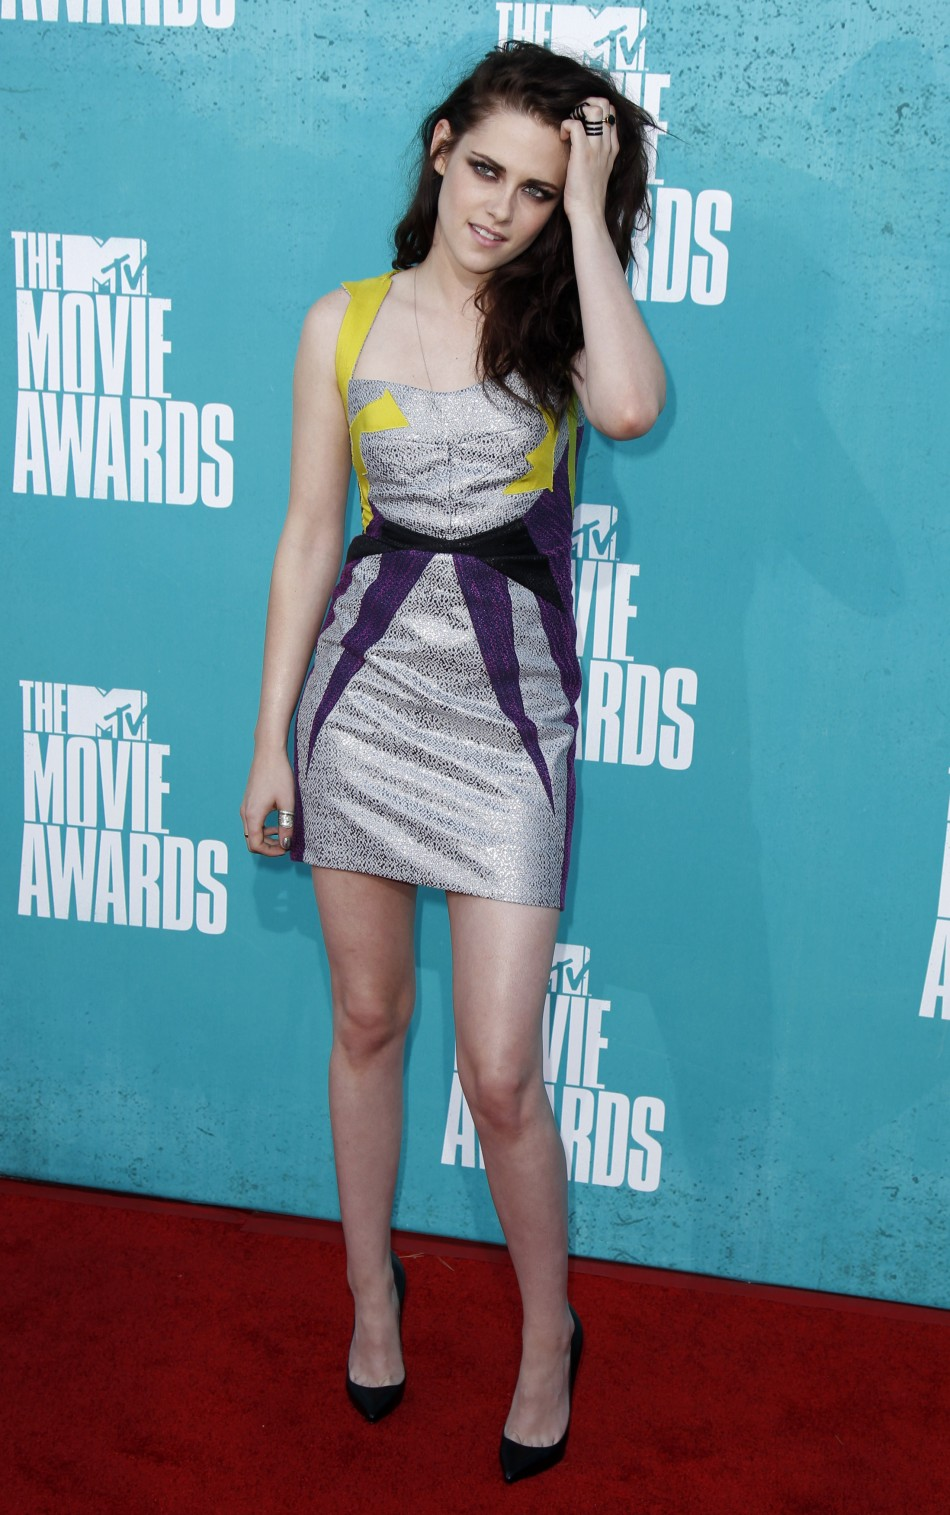 Actress Kristen Stewart arrives at the 2012 MTV Movie Awards in Los Angeles, June 3, 2012.